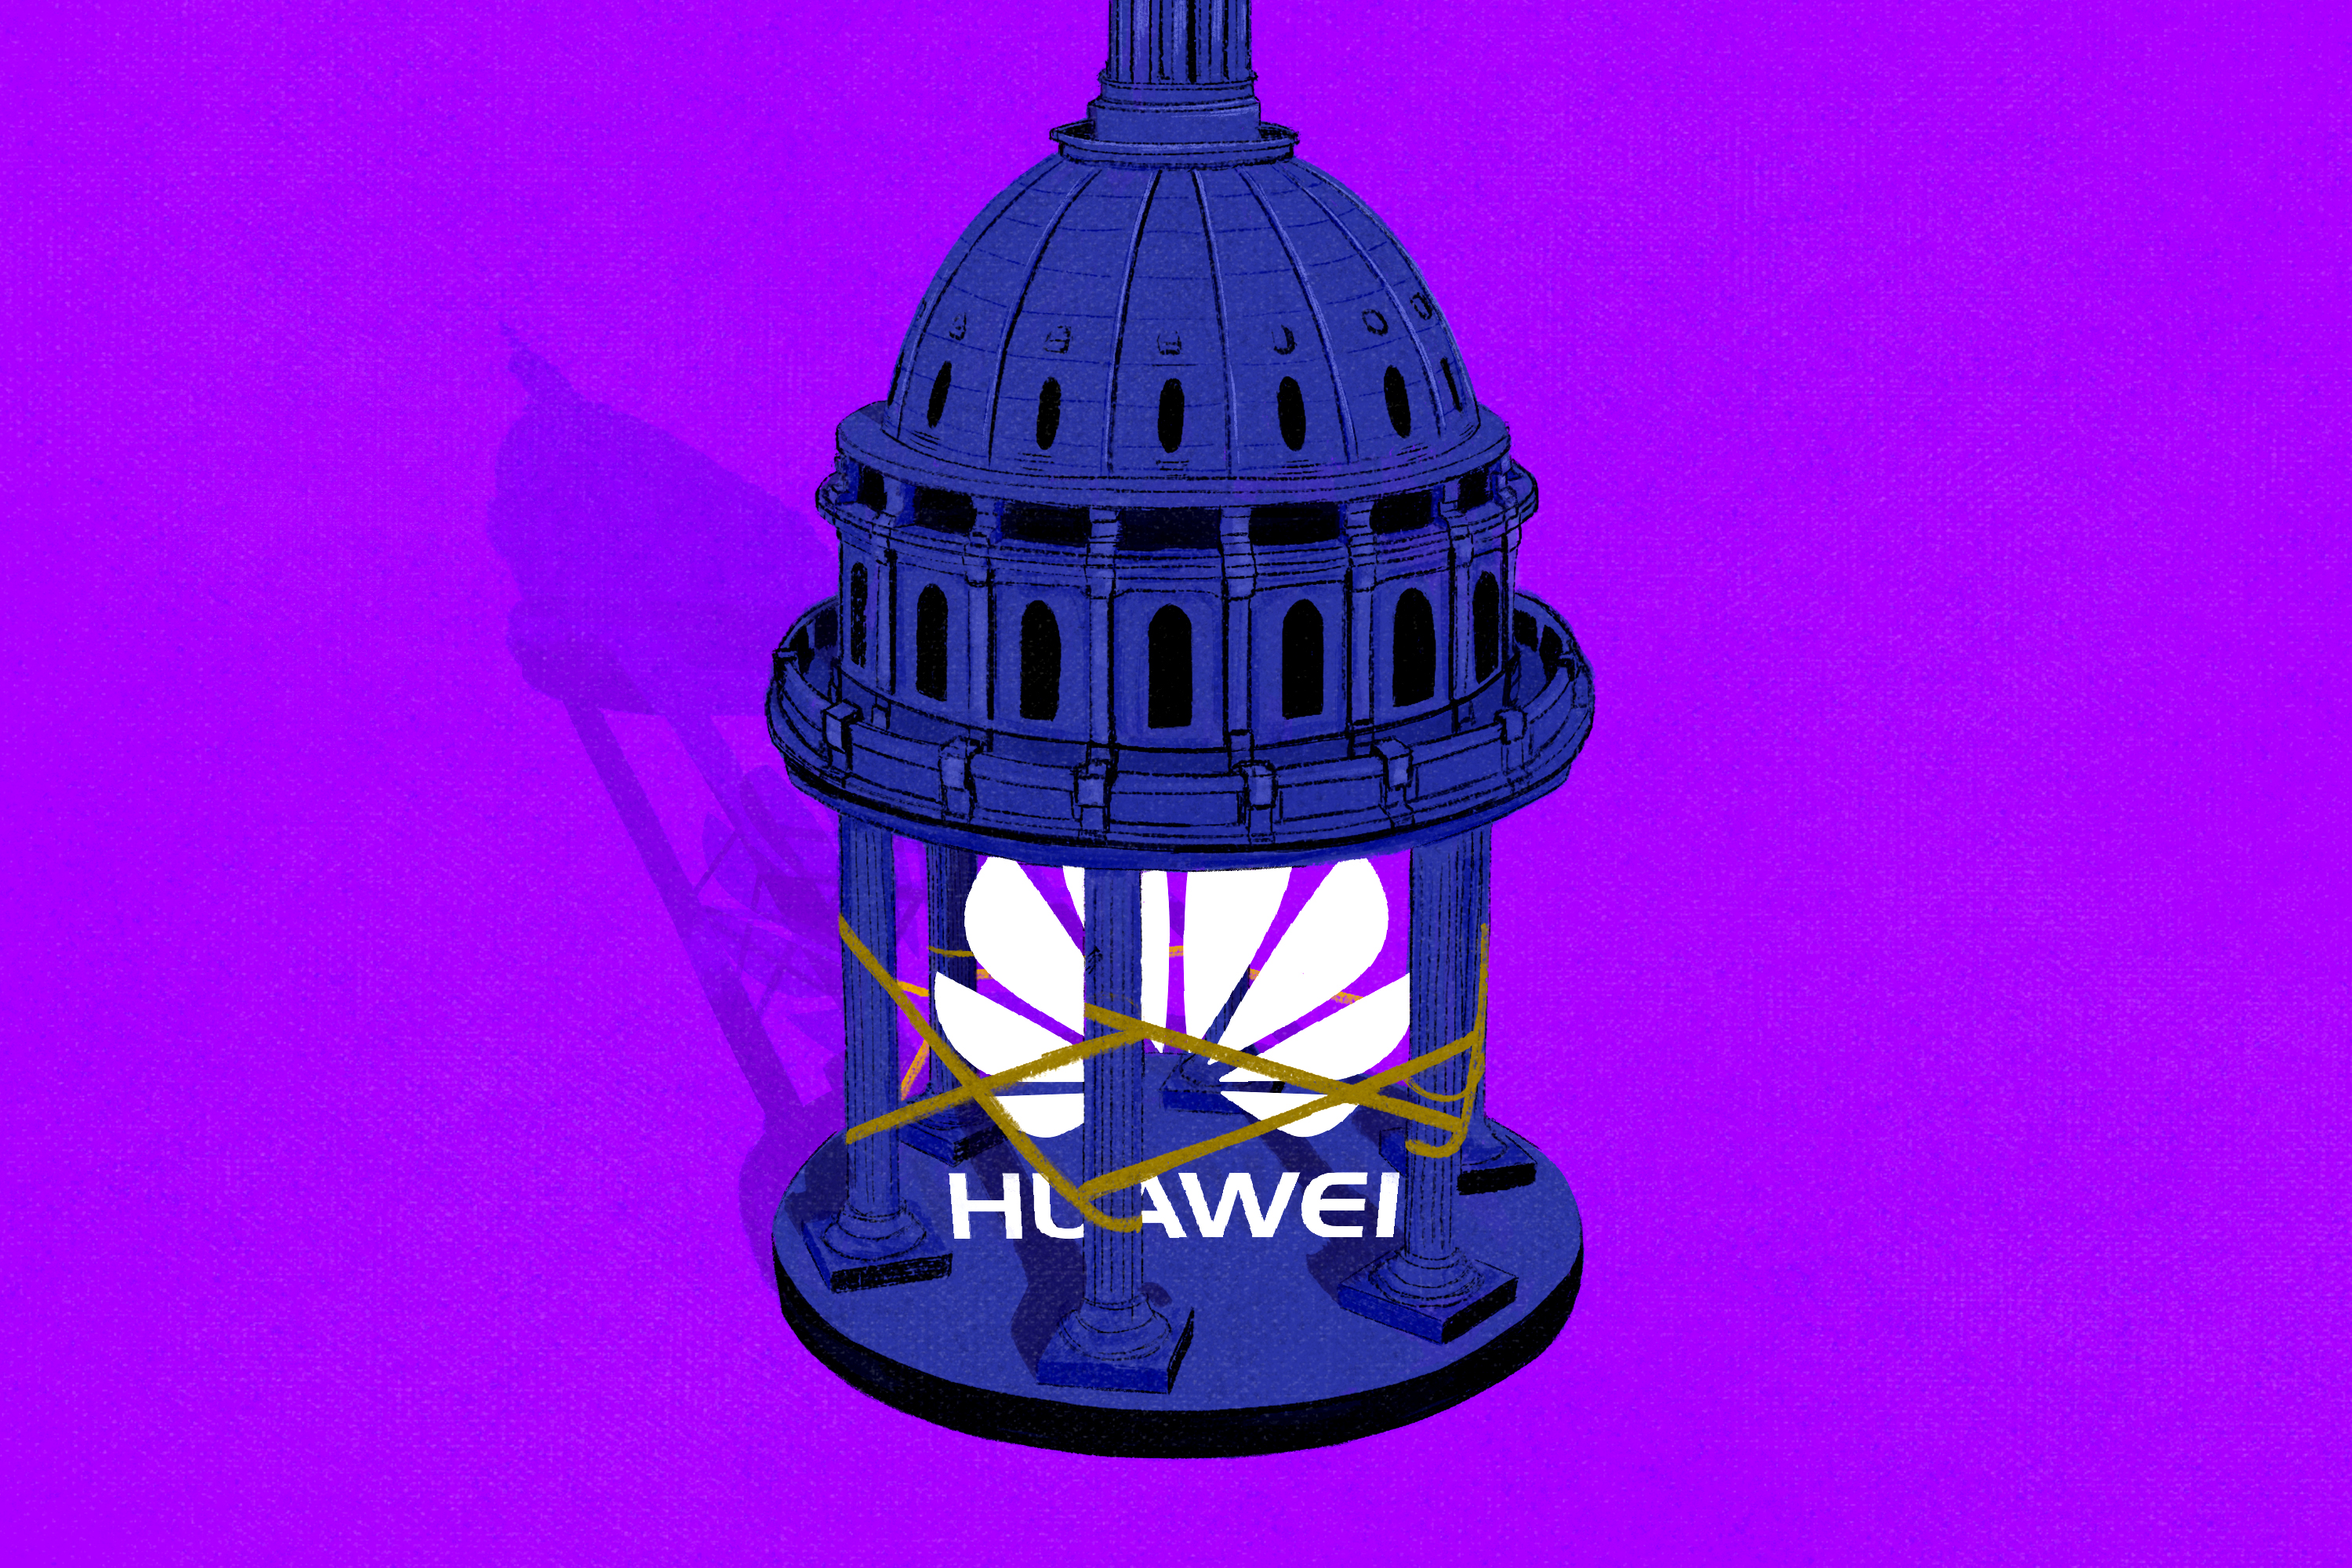 Google pulls Huawei's Android license - The Verge